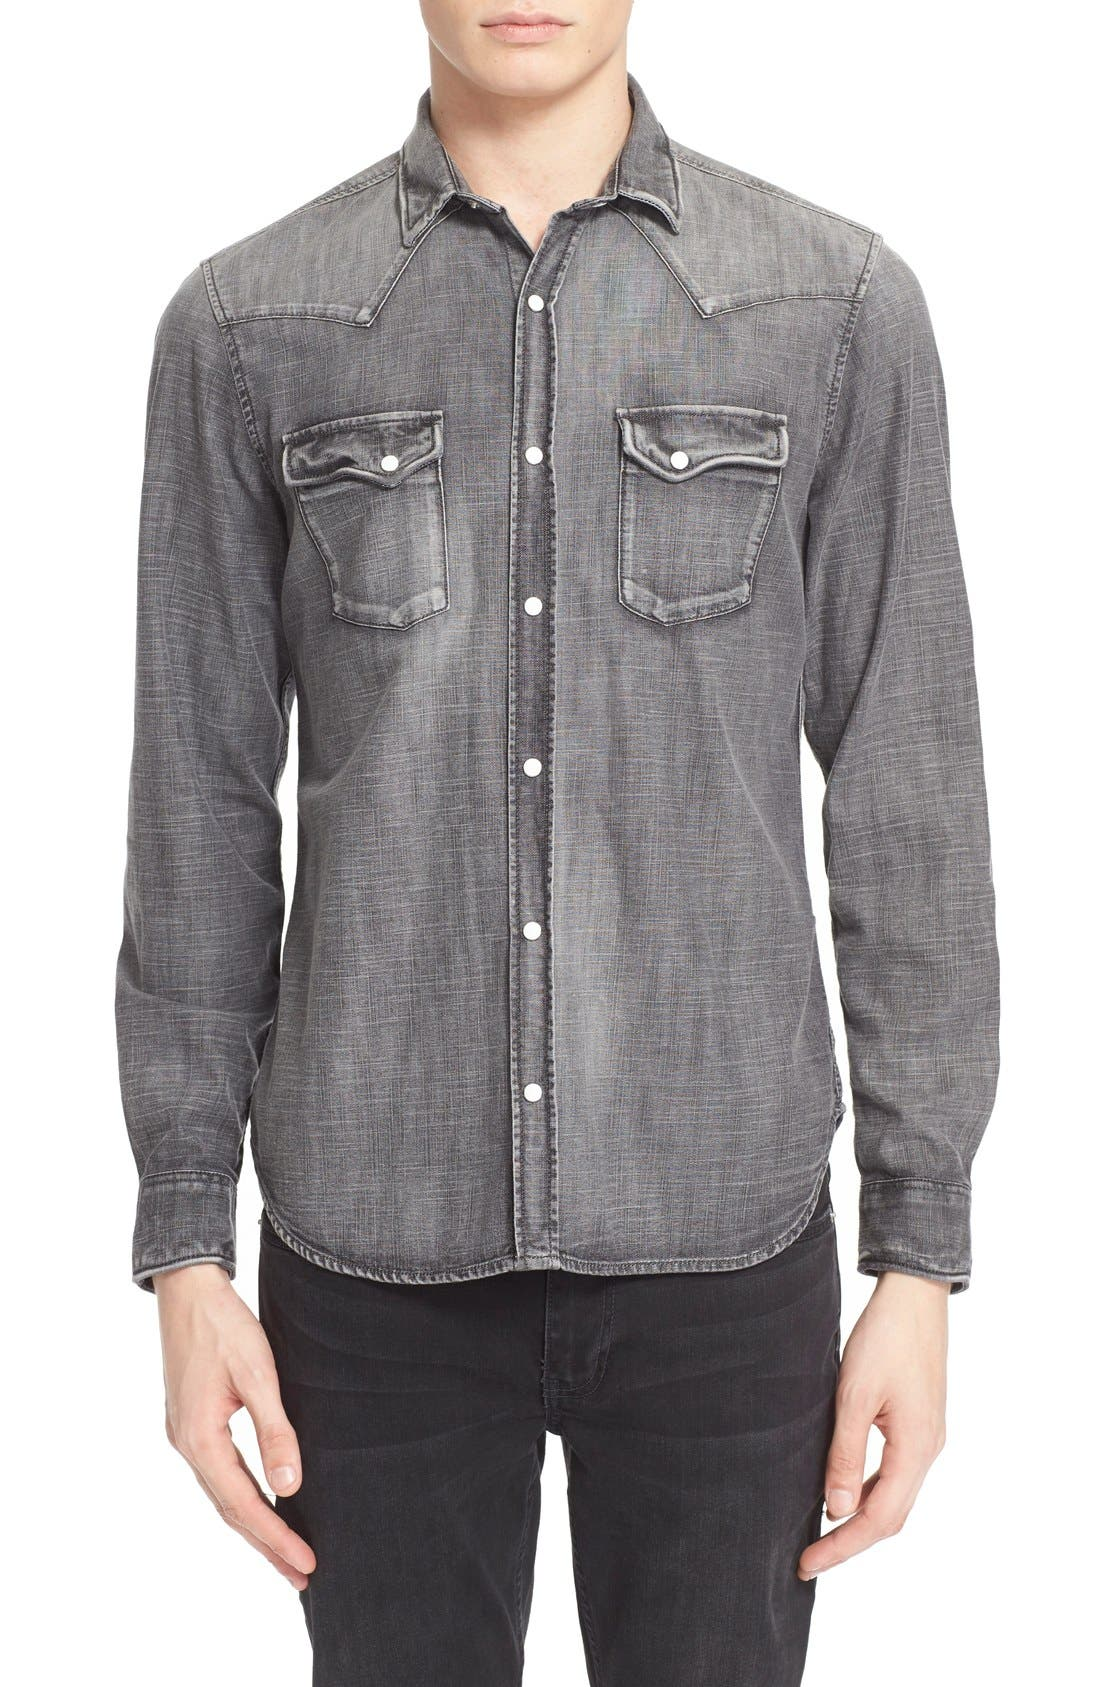 Main Image - The Kooples Trim Fit Denim Western Shirt